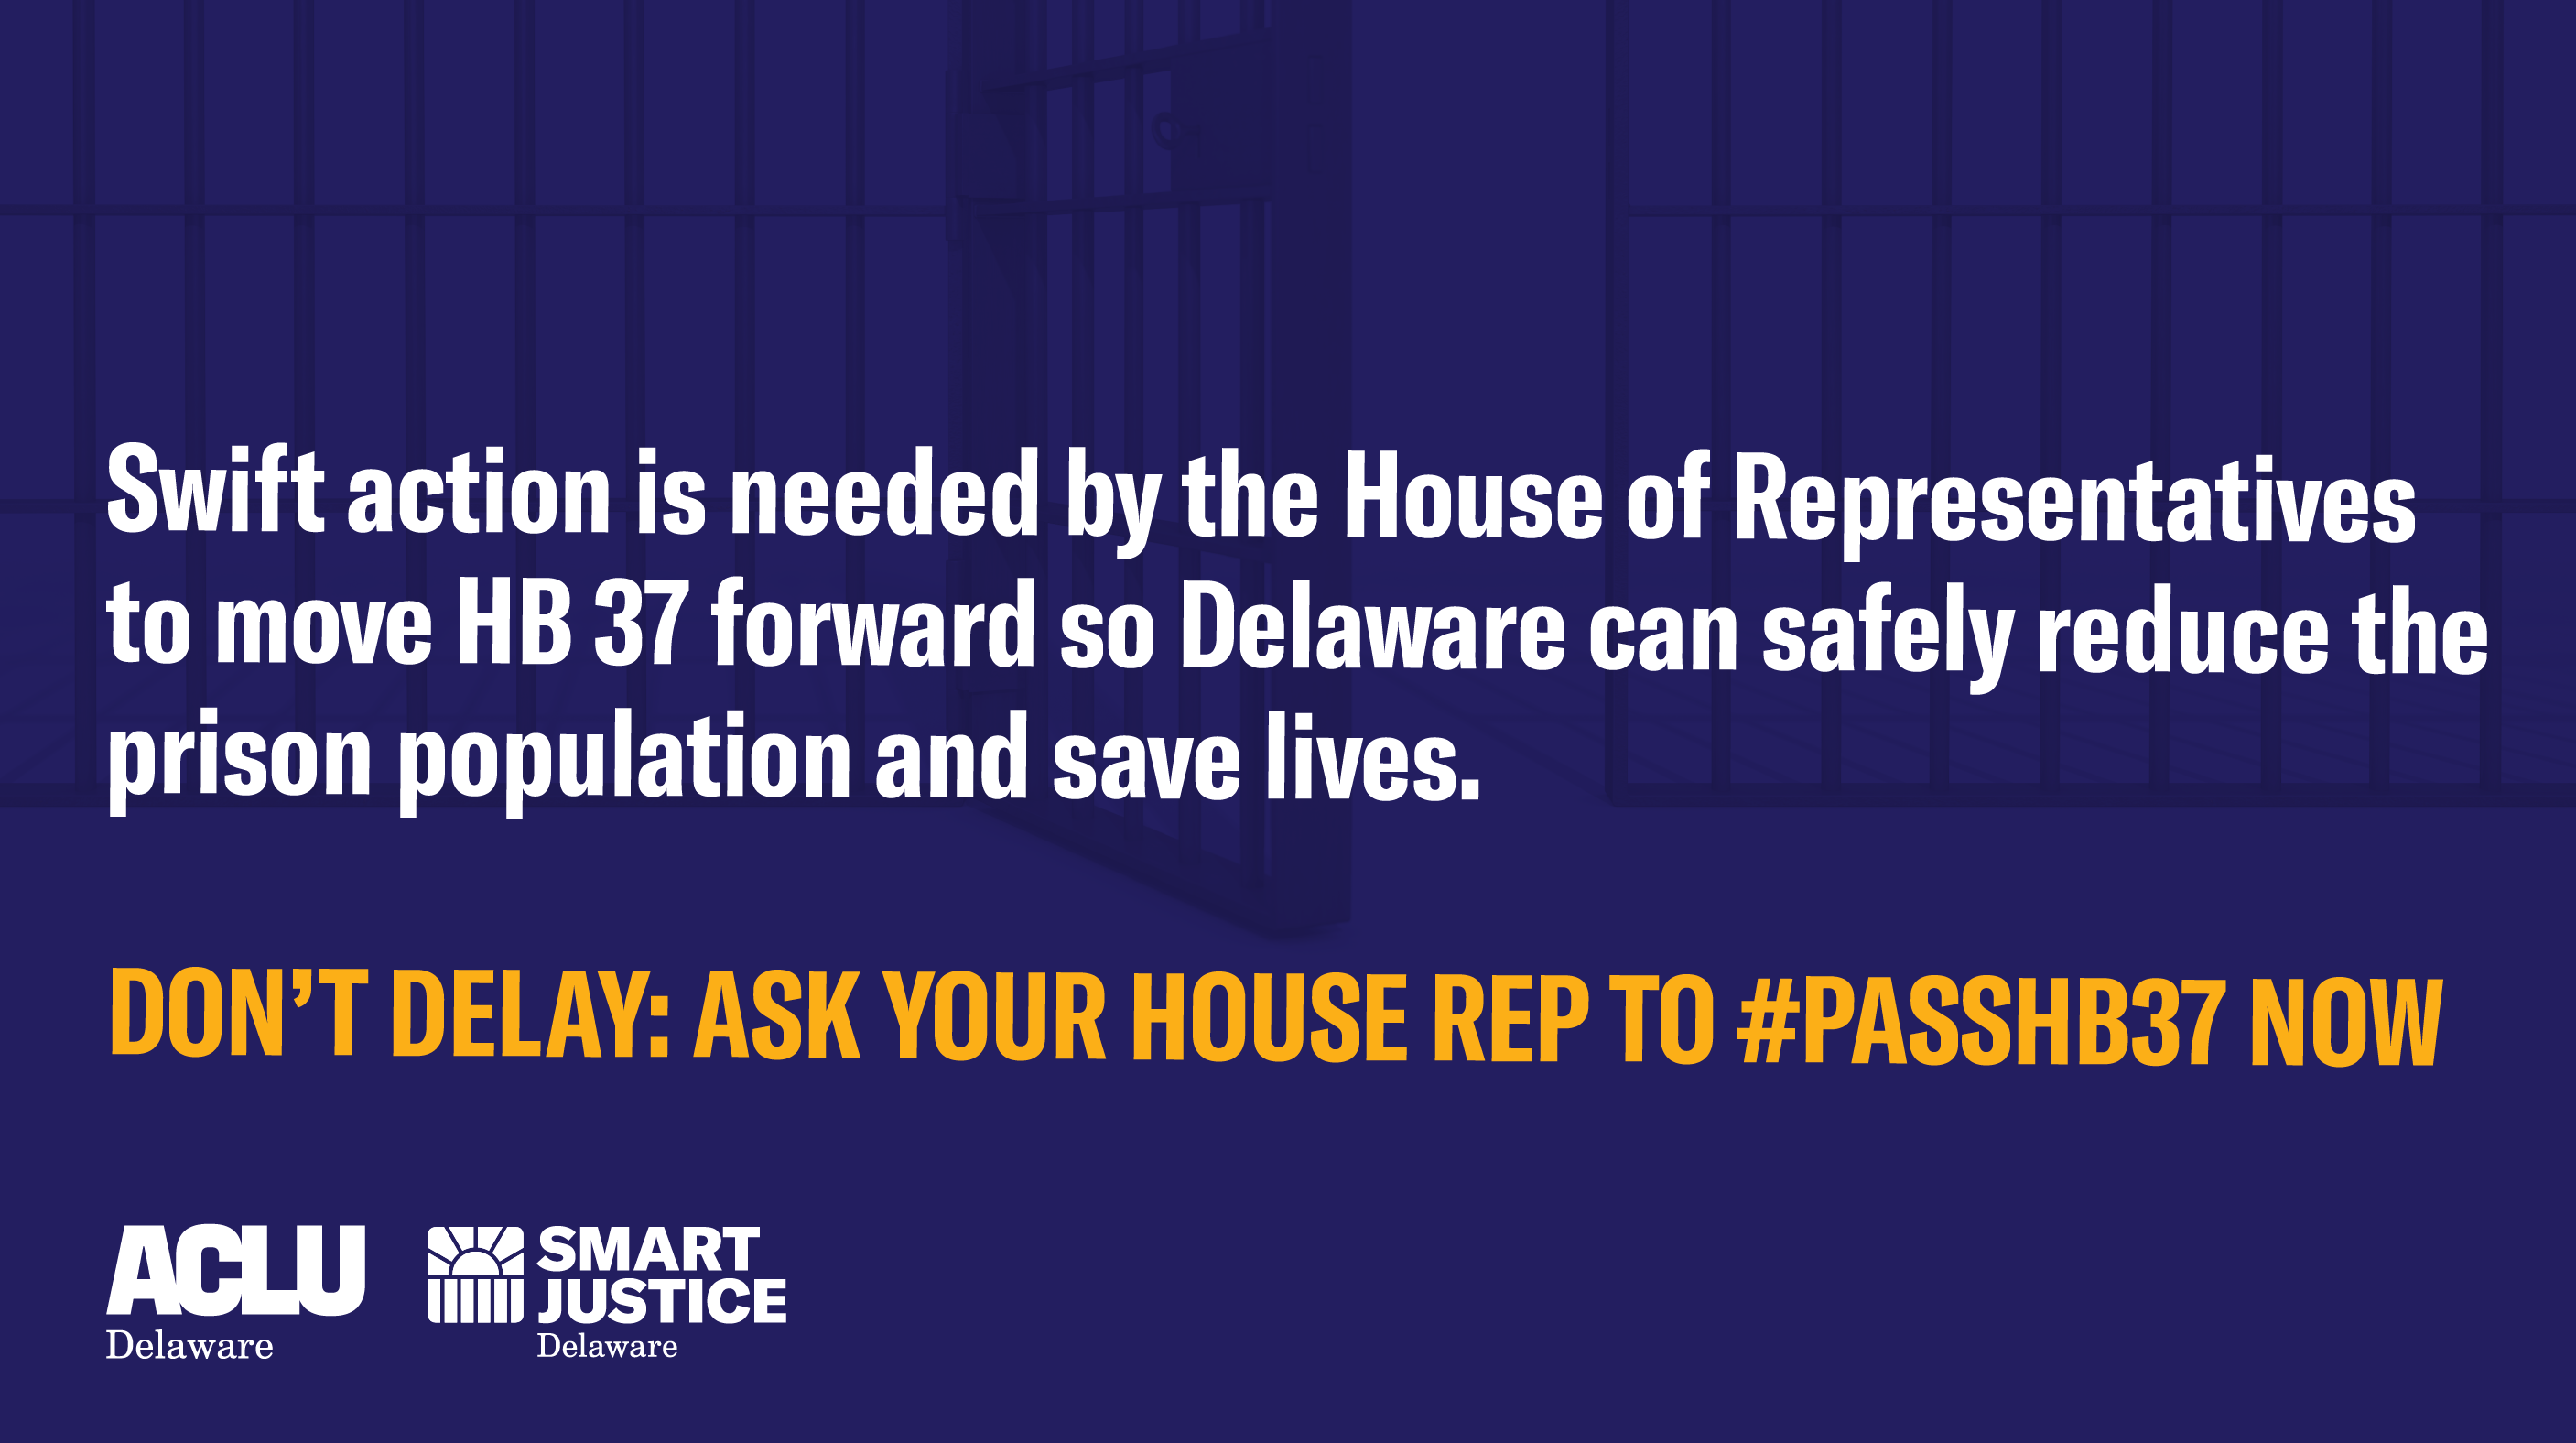 Swift action is needed by the House of Representatives to move HB 37 forward so Delaware can safely reduce the prison population and save lives. DON'T DELAY: ASK YOUR HOUSE REP TO #PASSHB37 NOW!